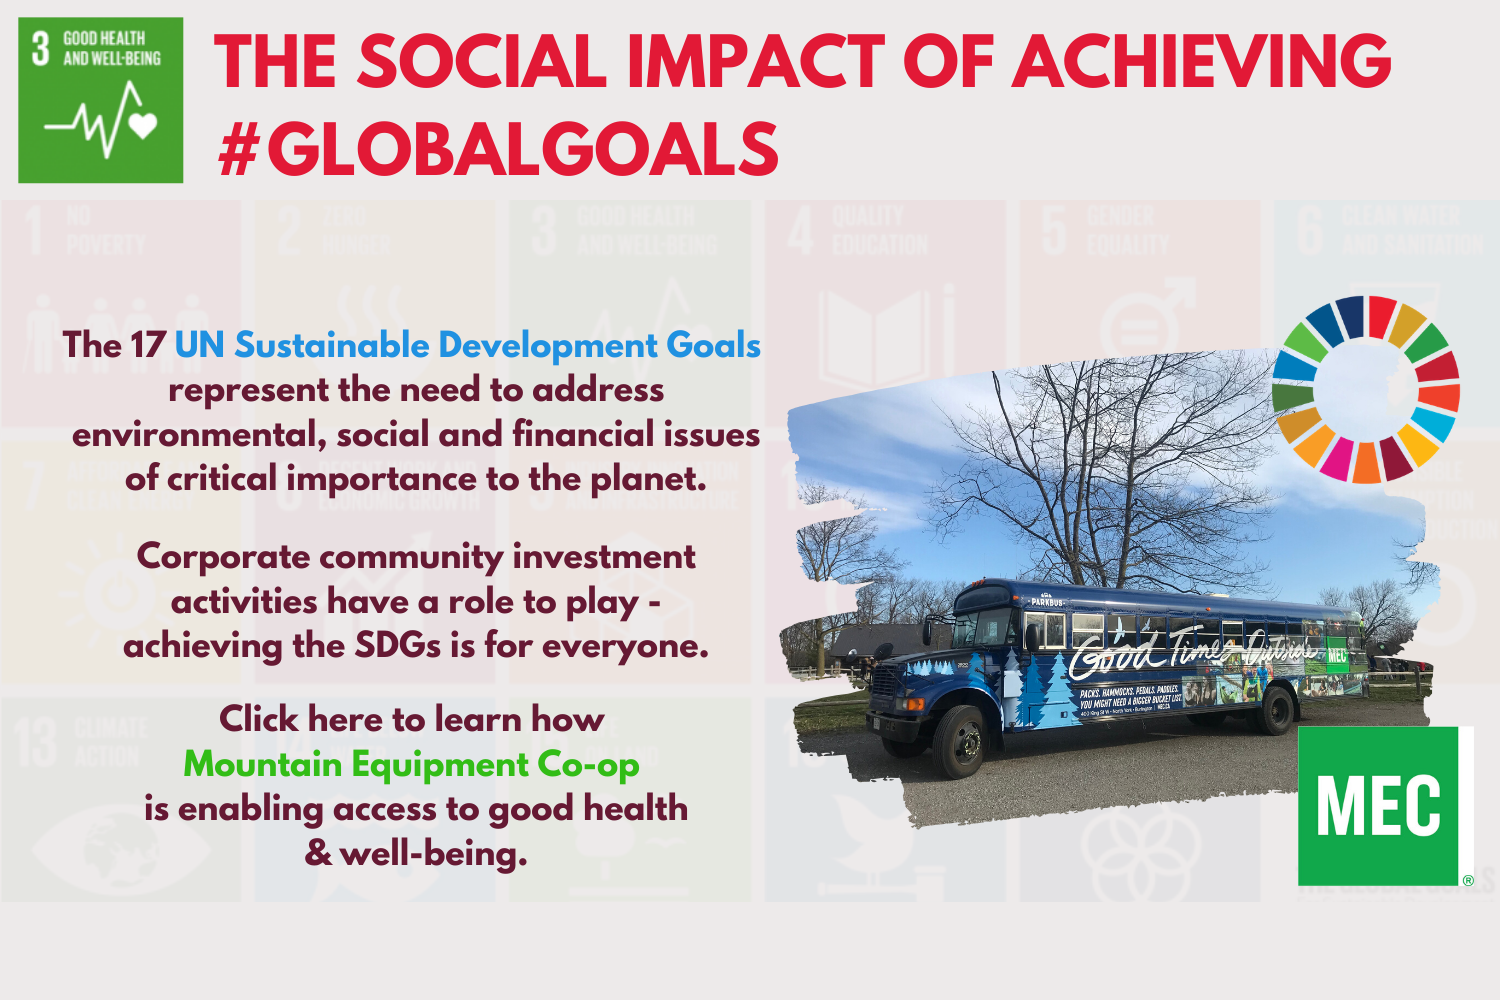 #SDGs 3, 13, 14, 15 – Good Health & Well-Being, Climate Action, Life Below The Water, Life On Land